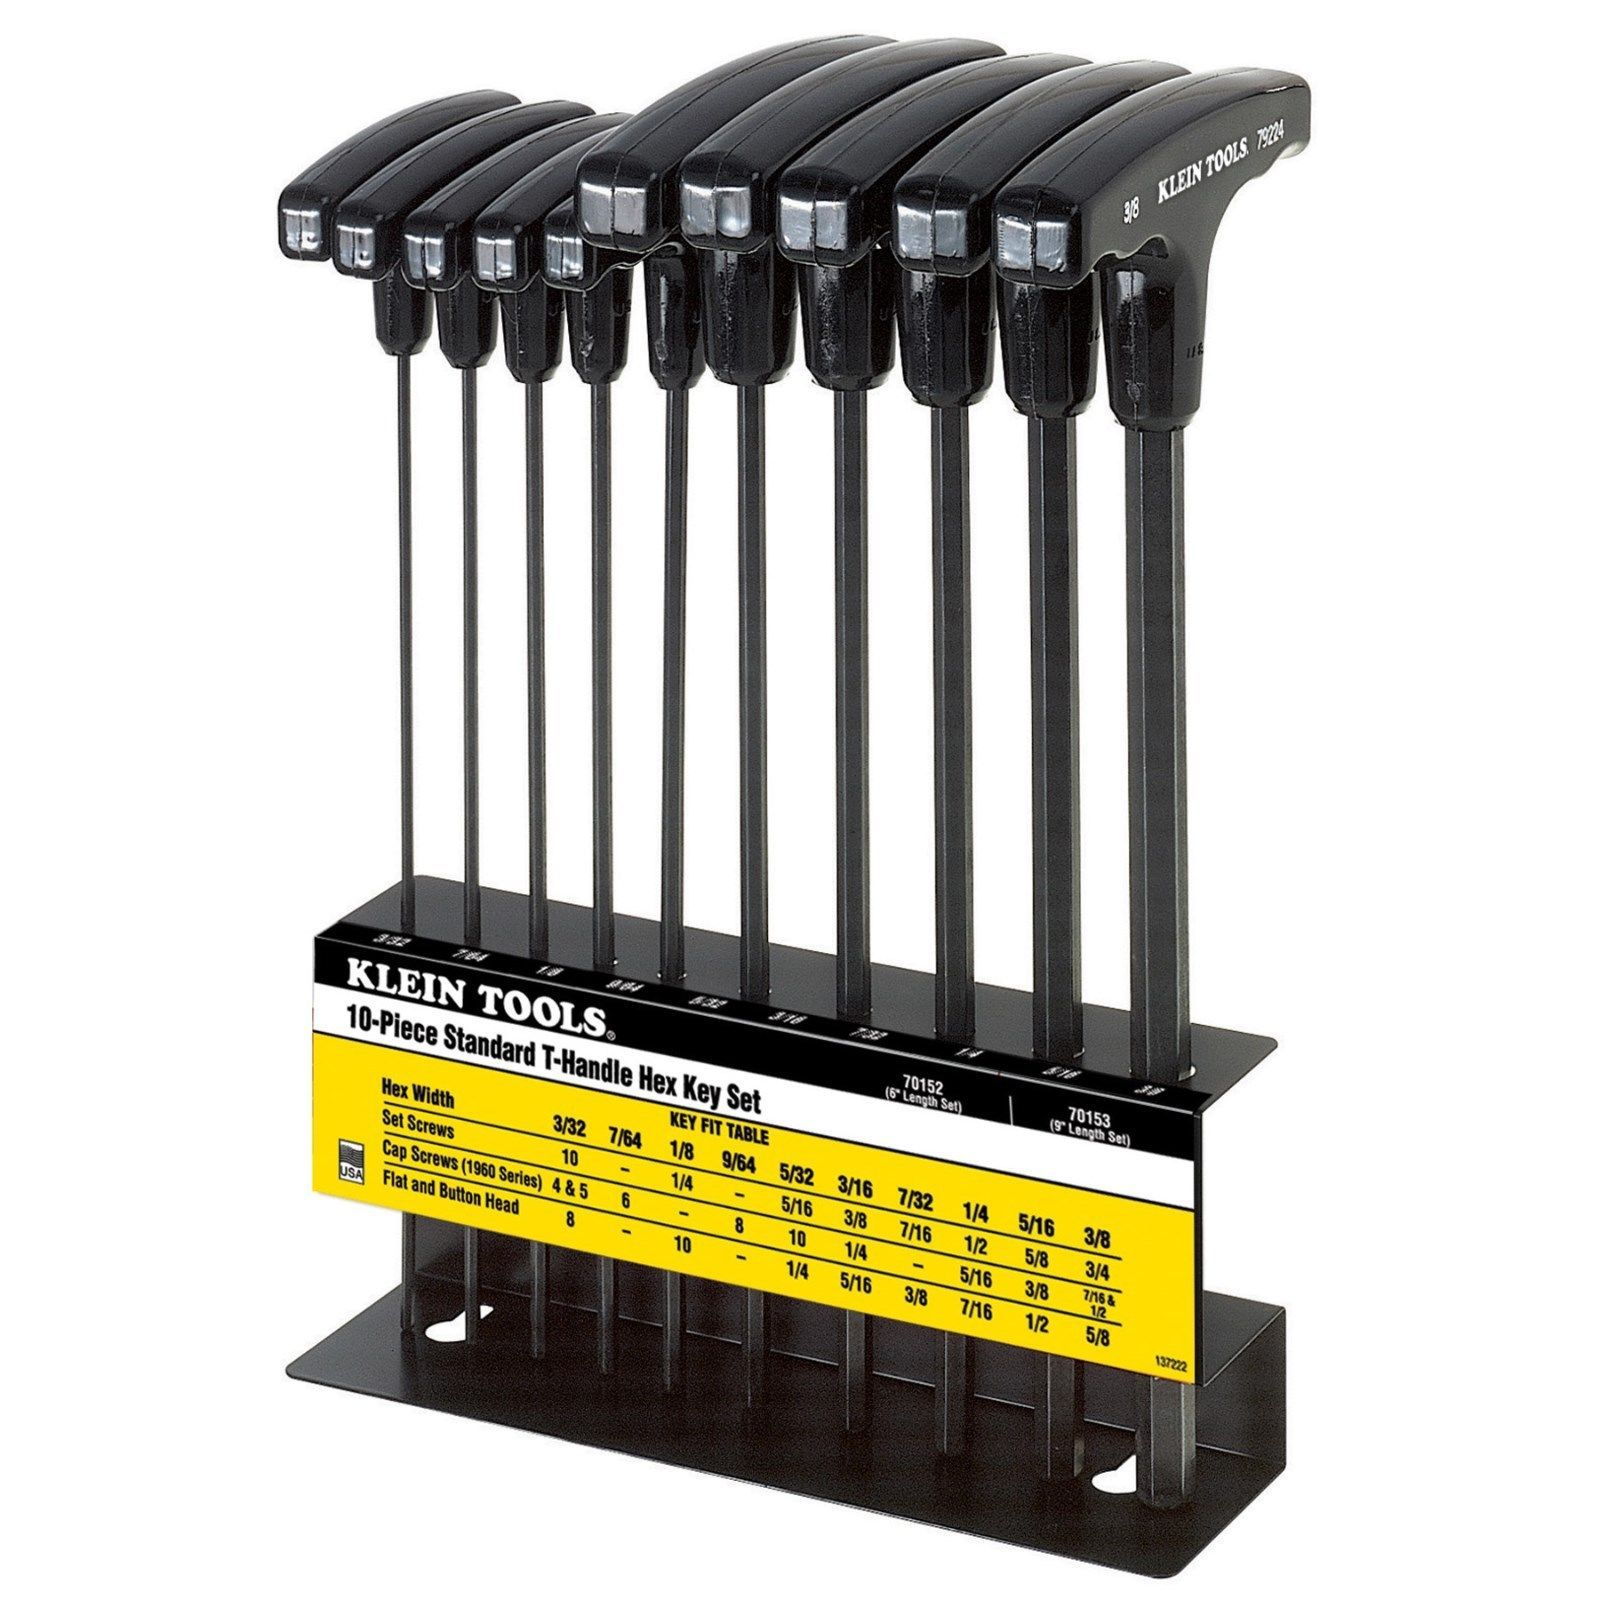 Hex Keys And Wrenches 42258 Klein Tools 70153 10 Piece Inch T Handle Hex Key Set And Stand Sizes 3 32 To 3 8 Buy It Now Only 35 O Hex Key Klein Tools Hex